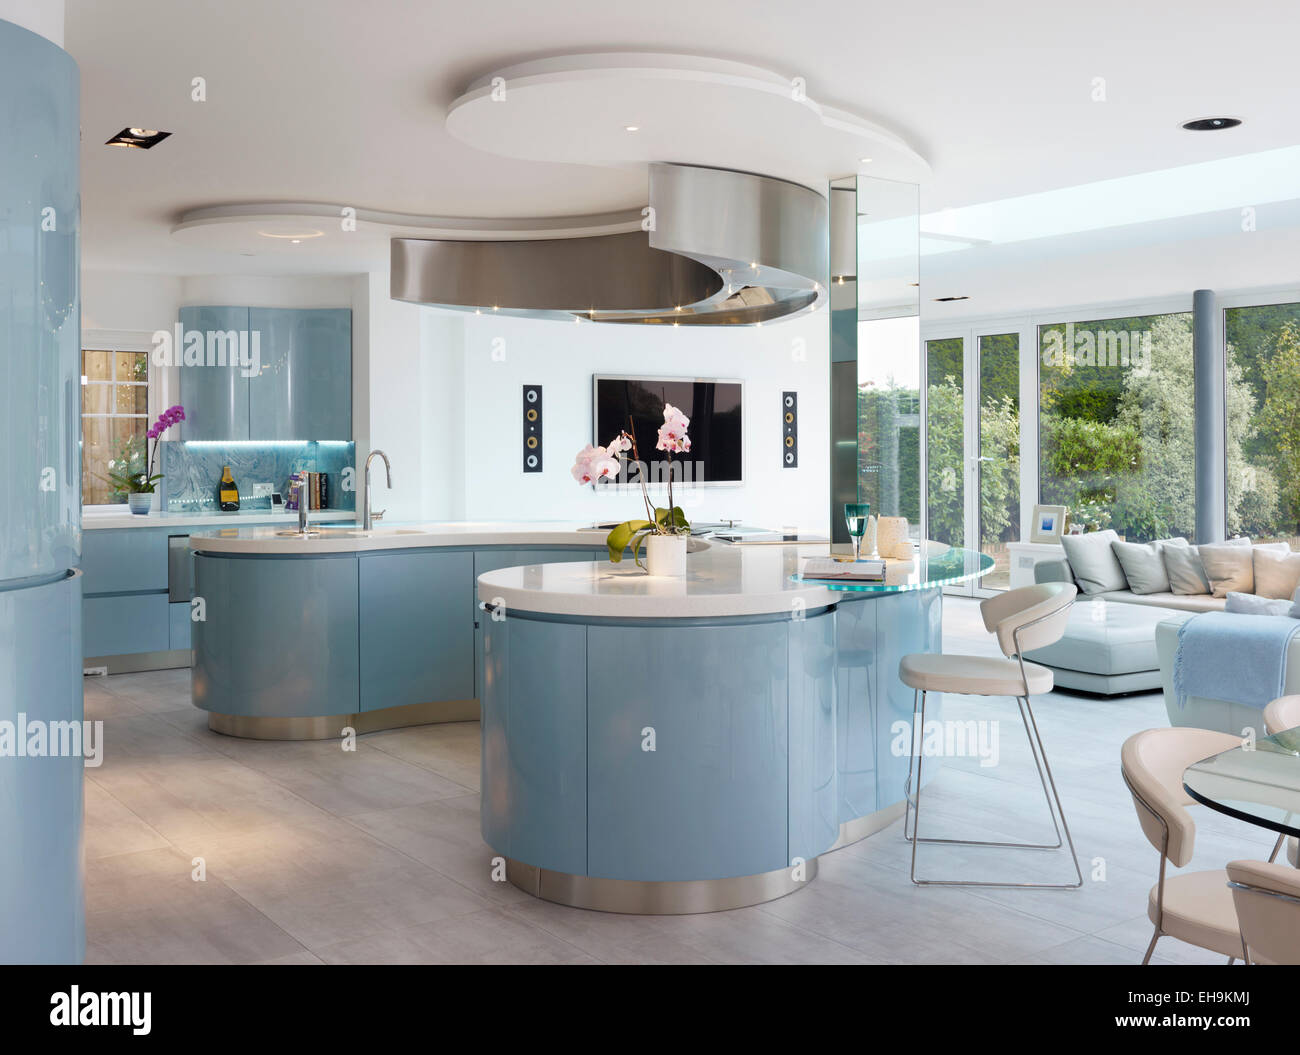 Blue And White Curved Breakfast Bar/island In Modern Kitchen Of Residential  House, The Drive, UK